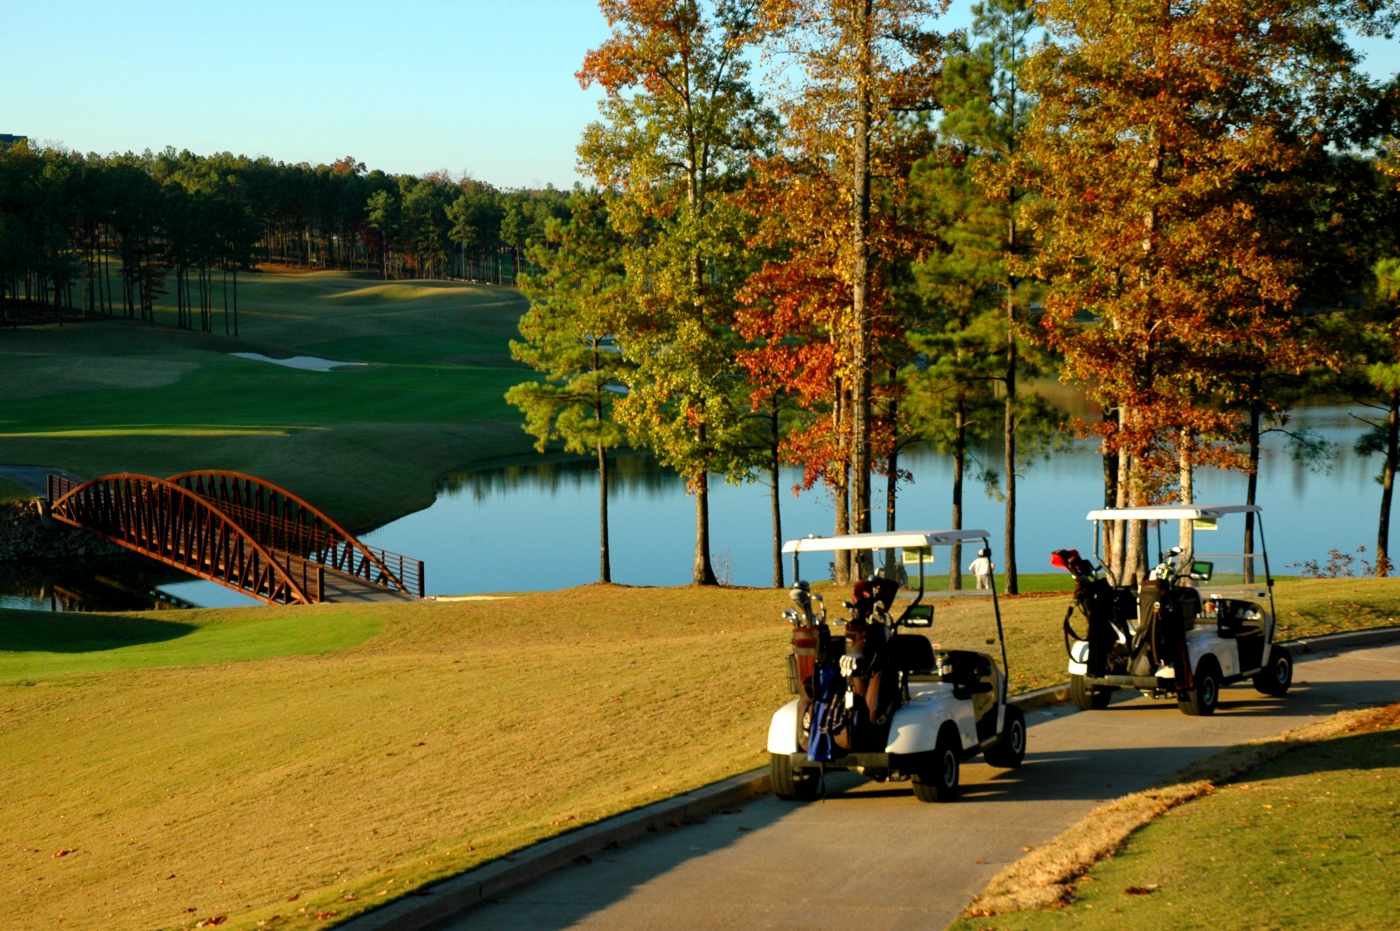 Alabama boasts countless incredible golf courses, including the world-renowned Robert Trent Jones Golf Trail.